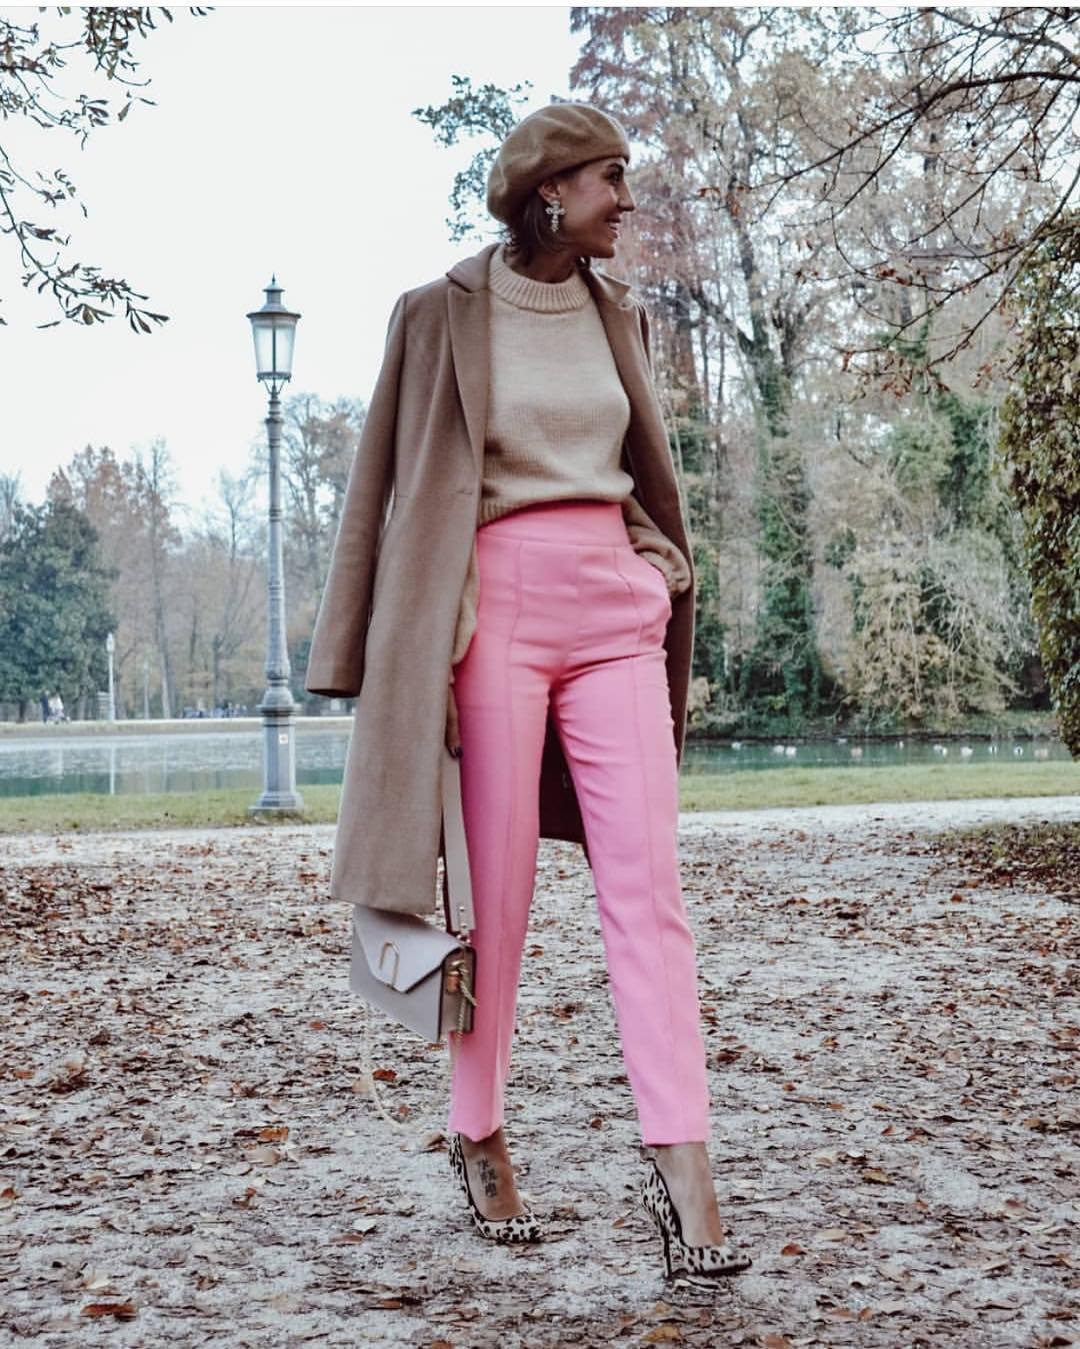 Parisian Street Style For Fall: Beret Hat, Coat And Tailored Pants 2019